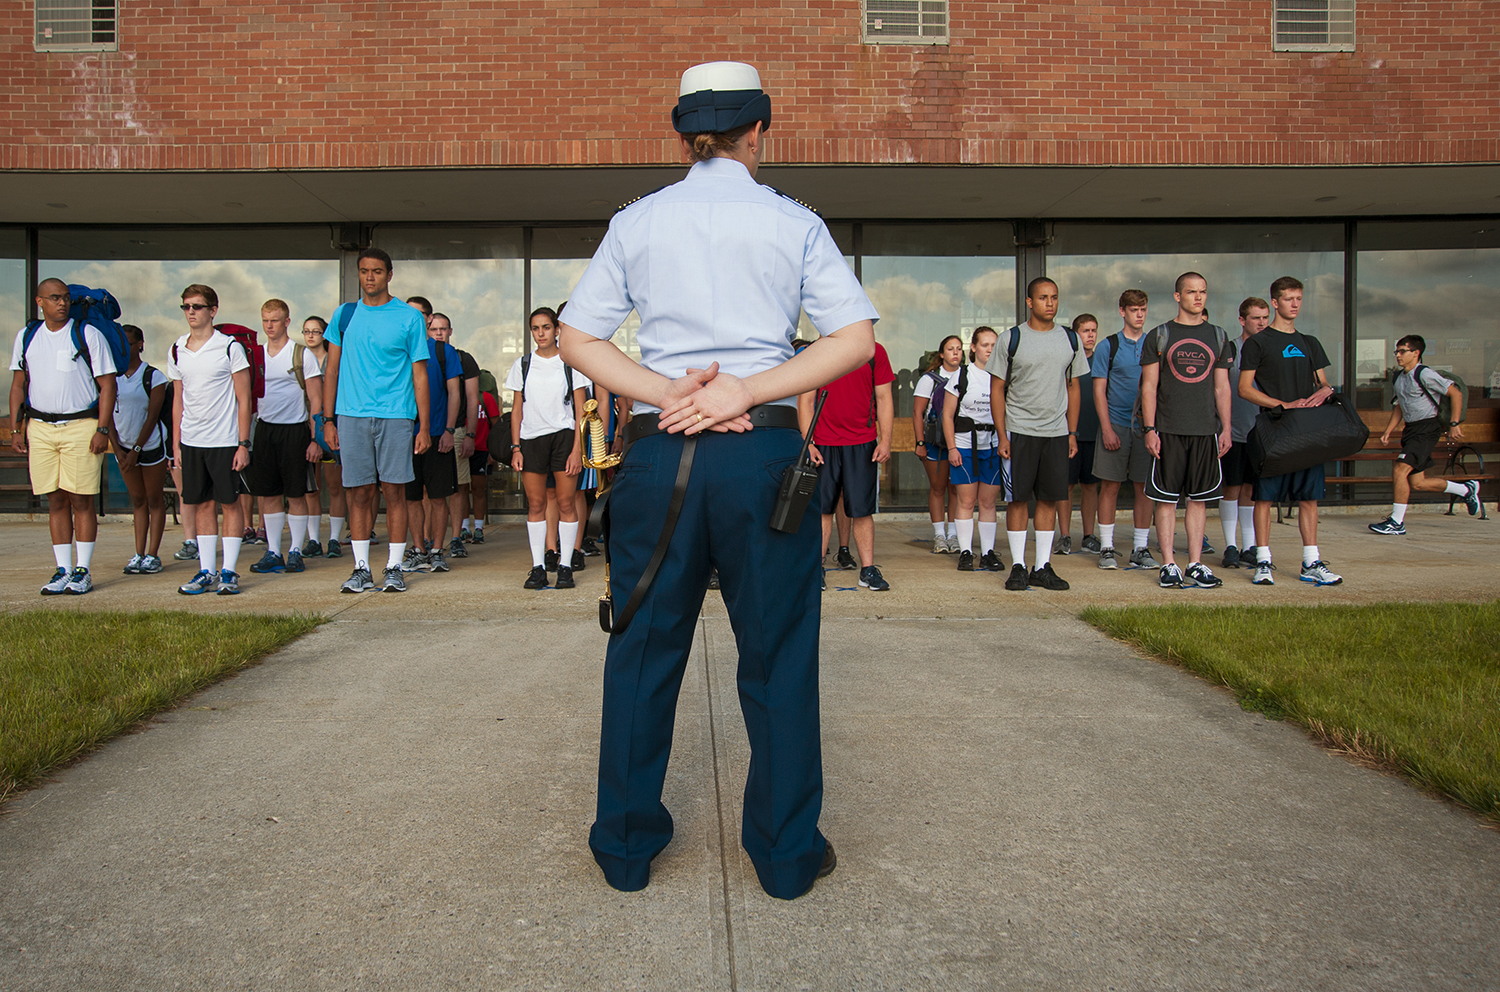 NEW LONDON- 06302014-- Officer Morin of Delta Company looks over new recruits, or Swabs, during R-Day of the United States Coast Guard Academy's Swab Summer in New London on Monday, June 30, 2014.(DANIEL OWEN | The Hartford Courant)